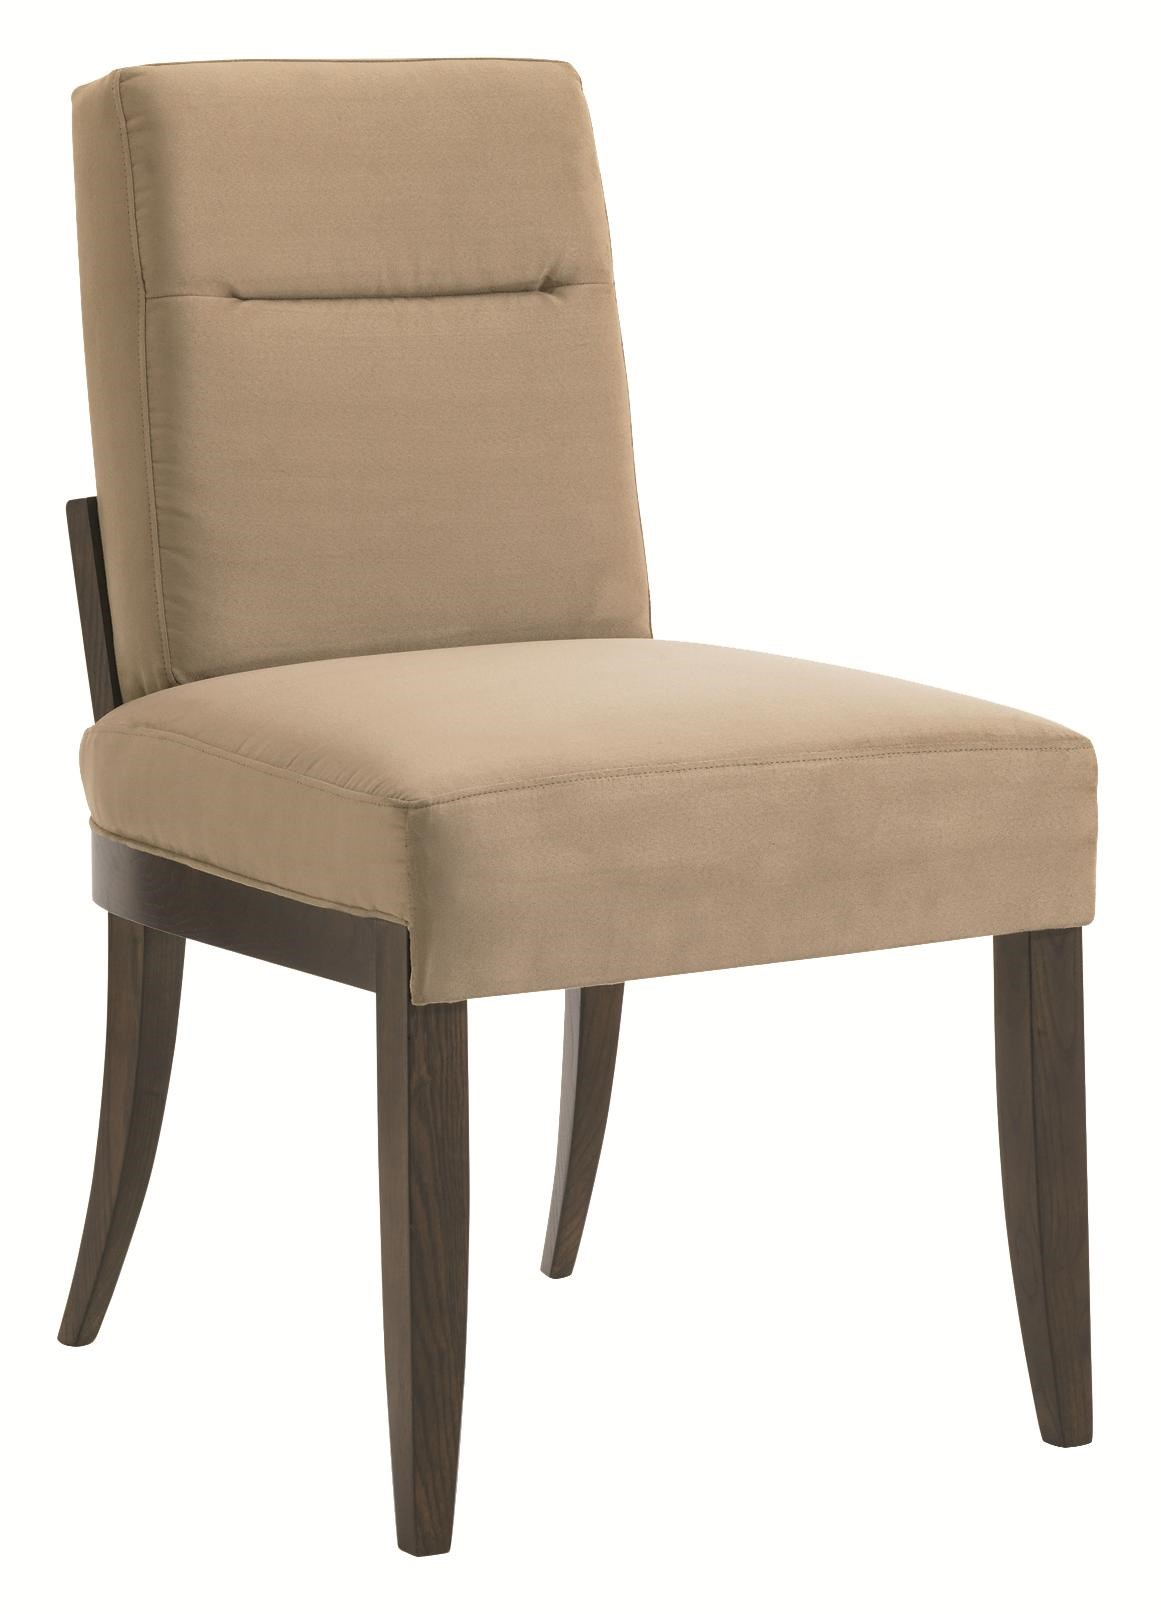 Schnadig Modern Artisan Craftsmen Dining Side Chair